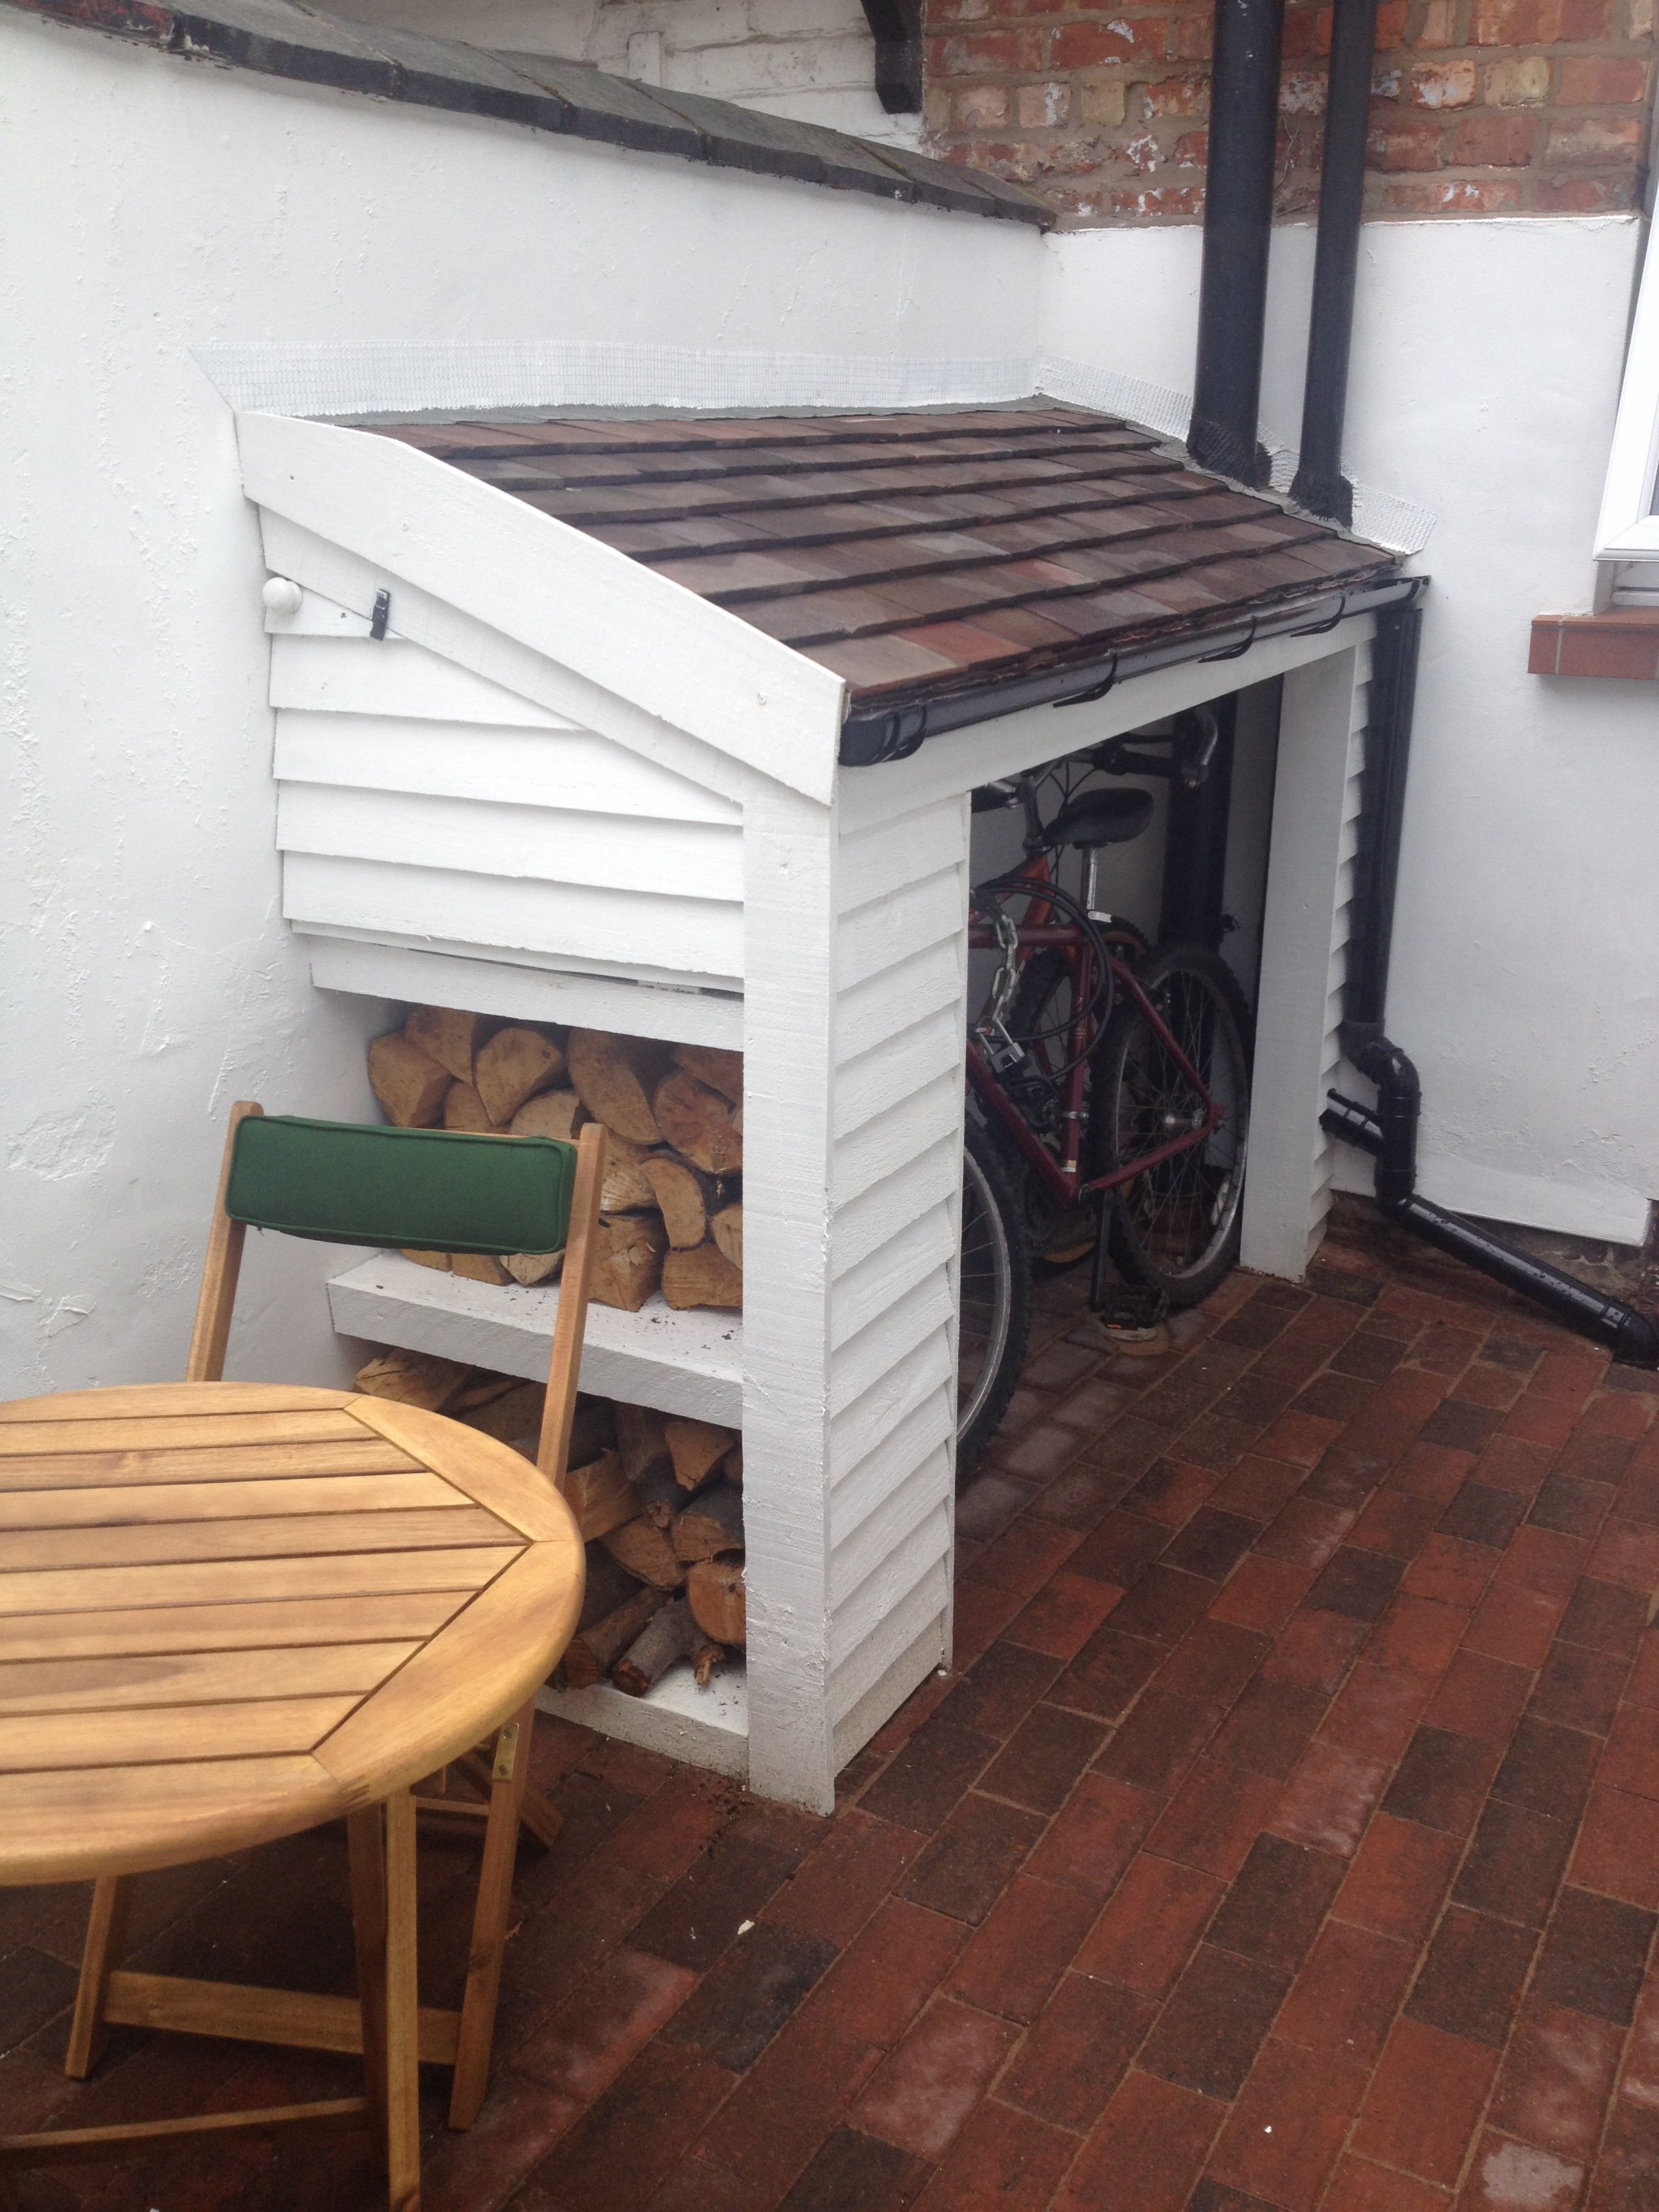 pact bike shed small garden yard The front opens up to a drinks